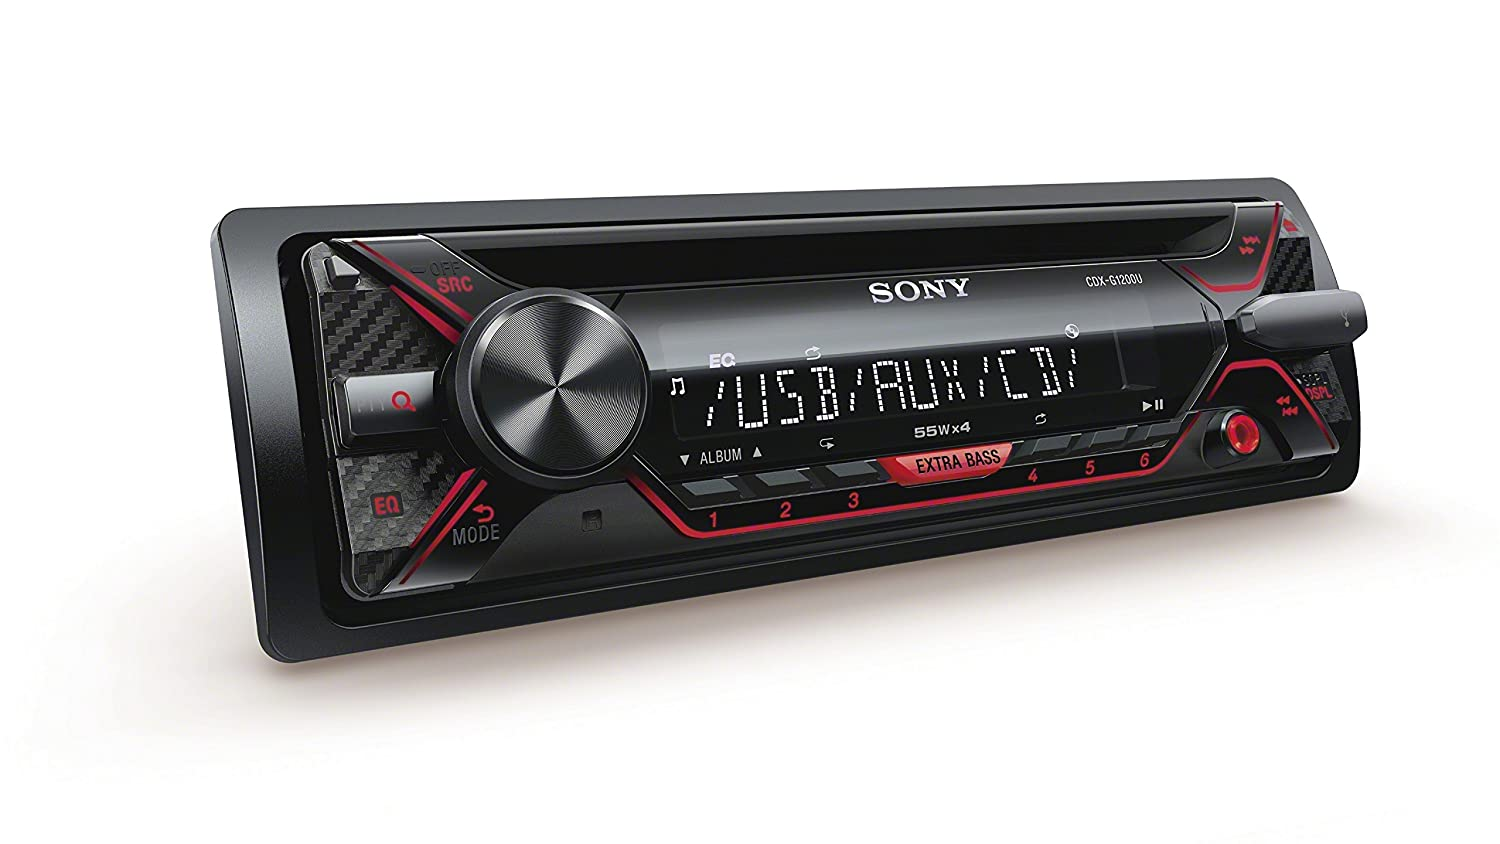 Sony CDX-G1200U 55Wx4ch max CD Receiver with USB and Aux Inputs